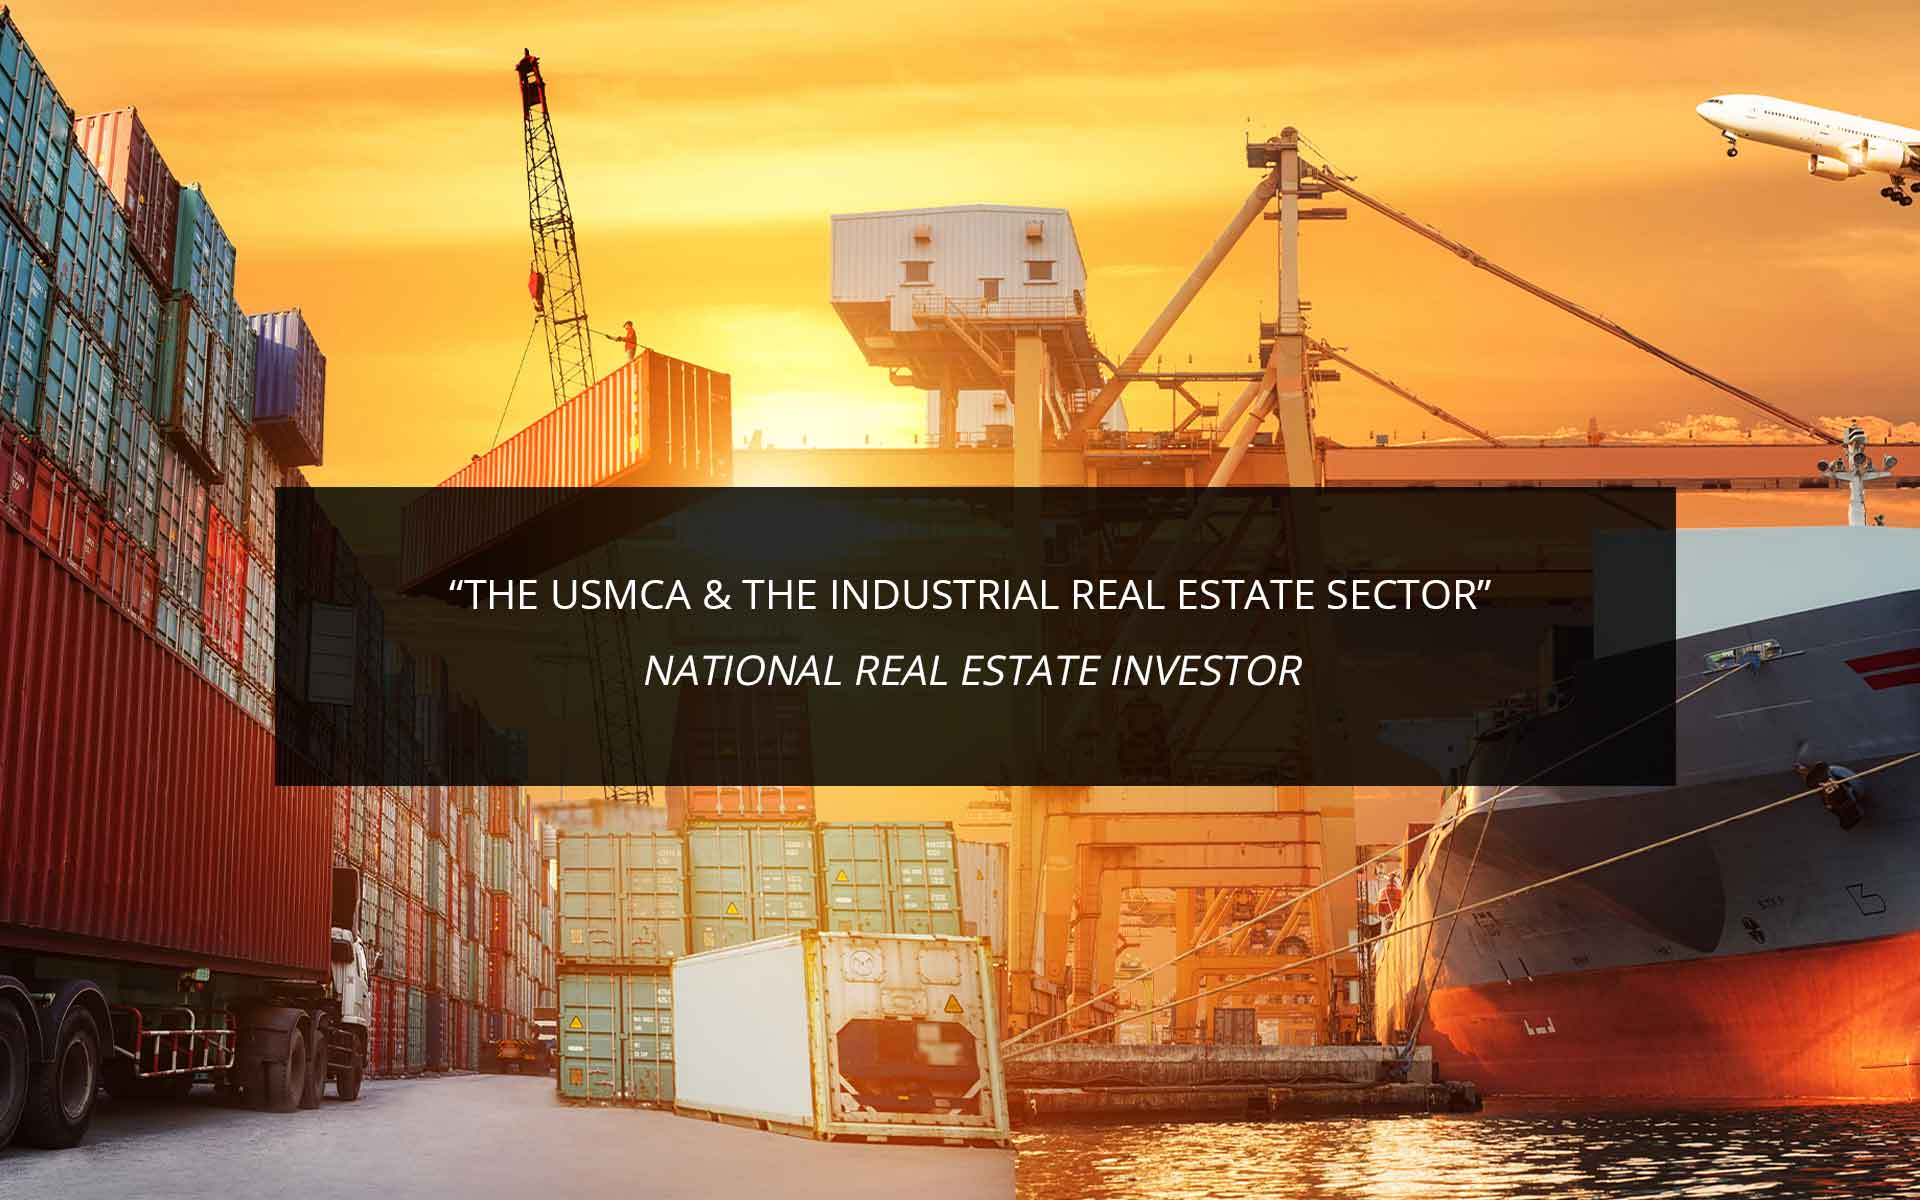 The USMCA & the Industrial Real Estate Sector